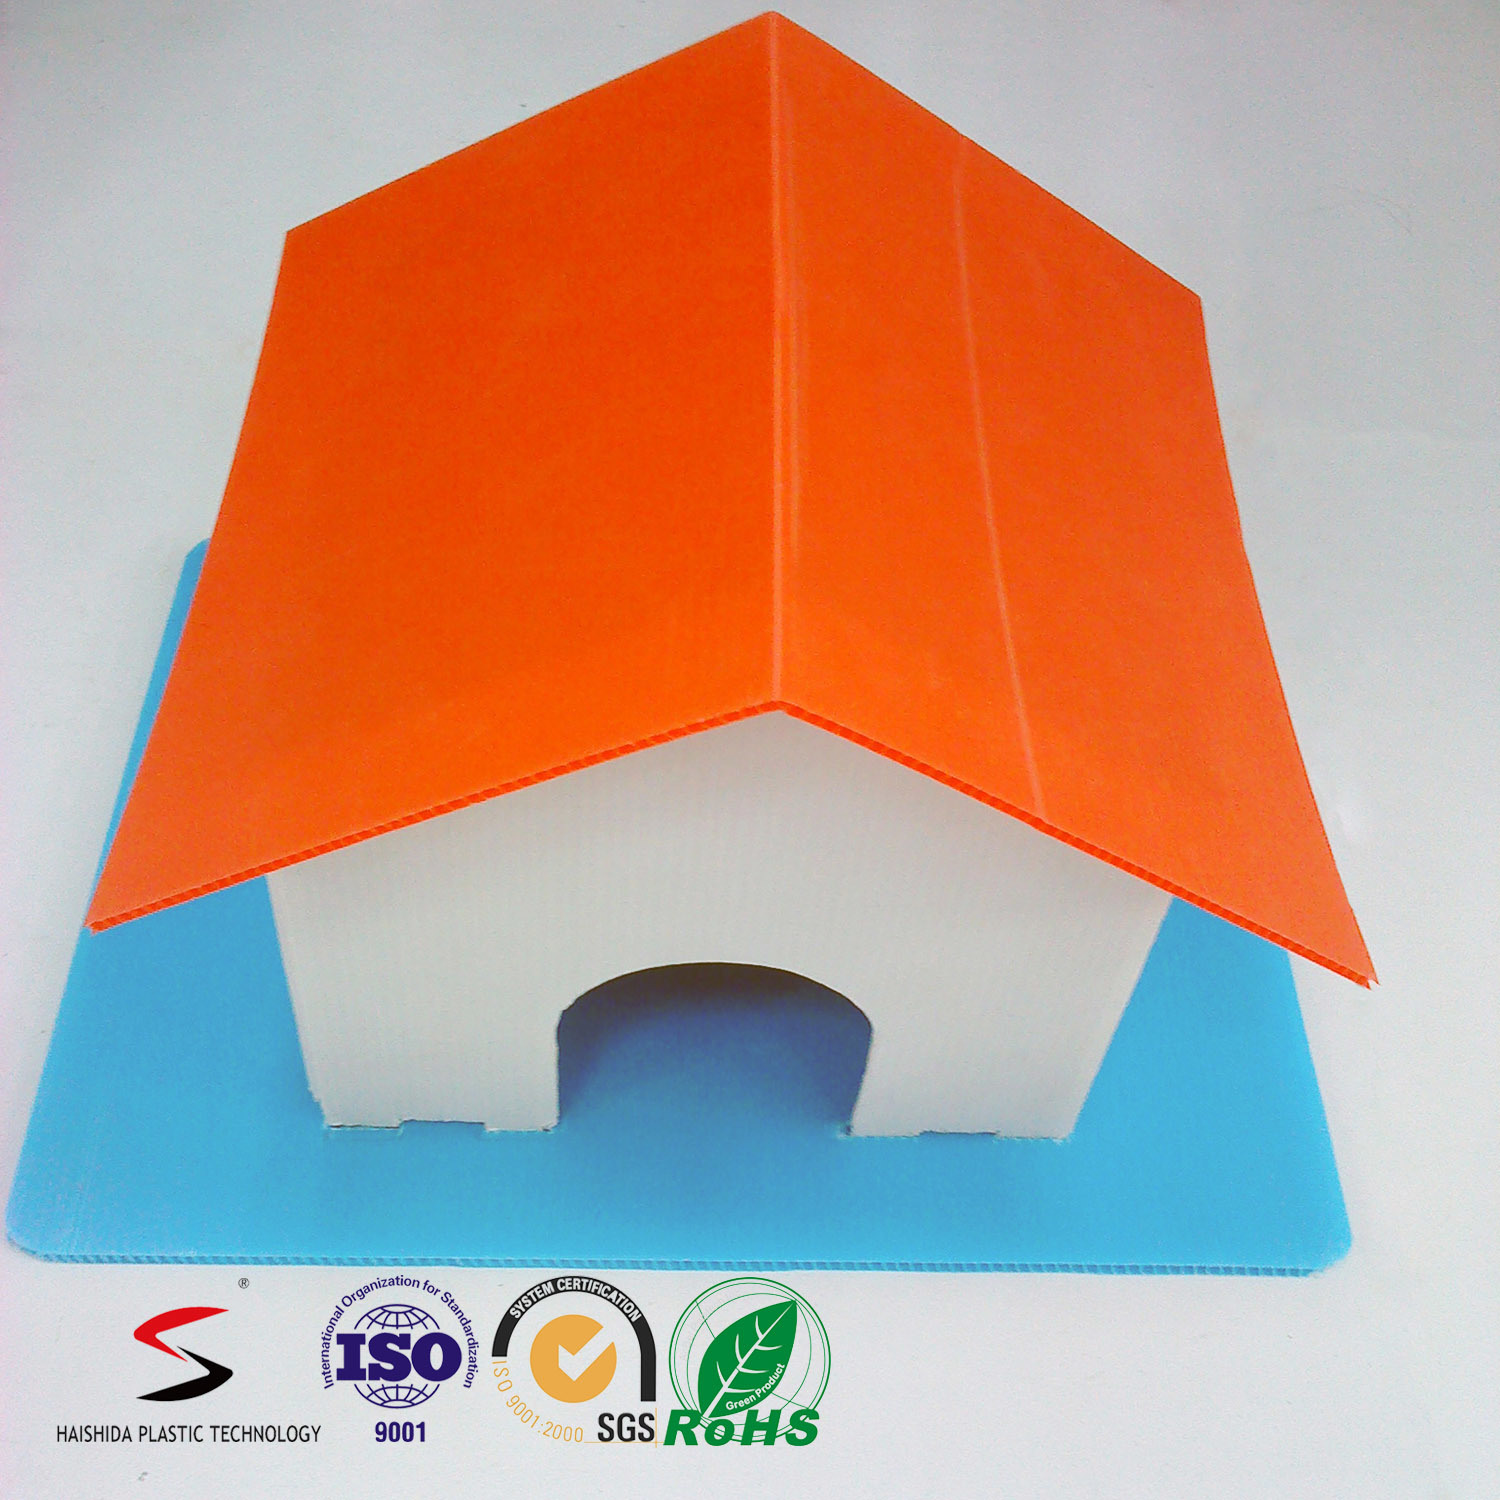 New Design of Foldable Playhouse for Kids Toy DIY Assembly House